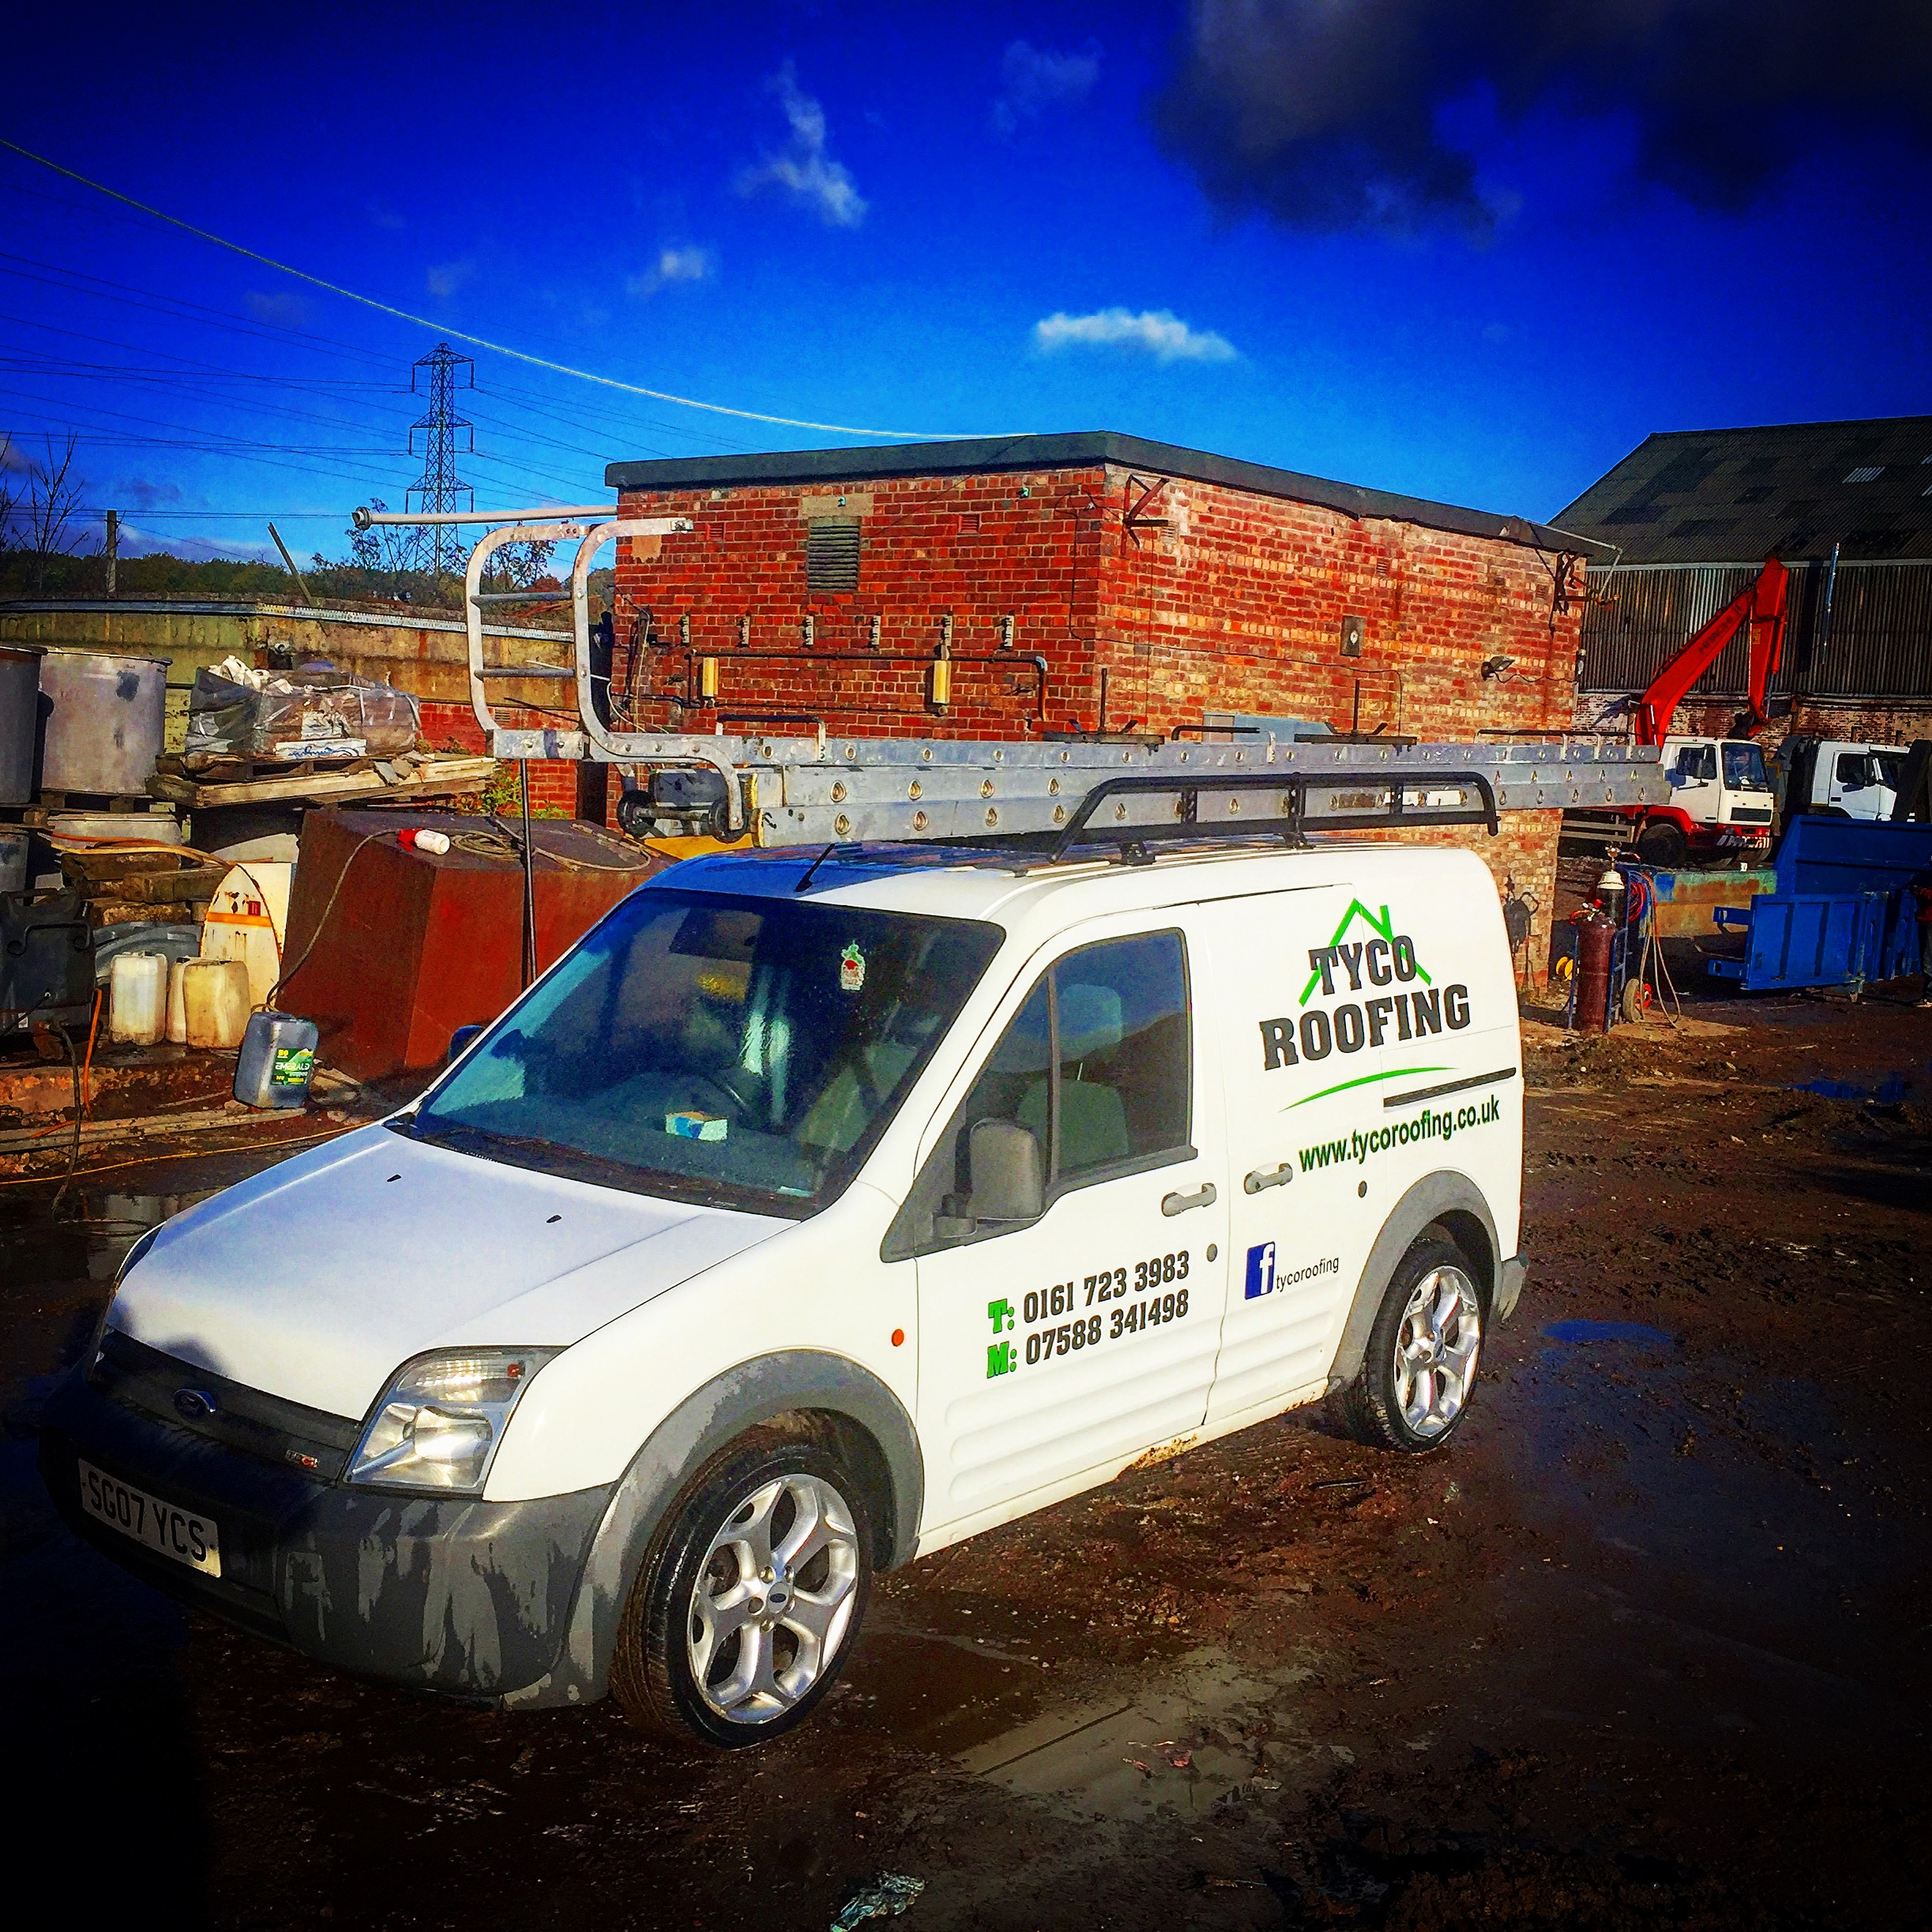 Tyco roofing | Bark Profile and Reviews